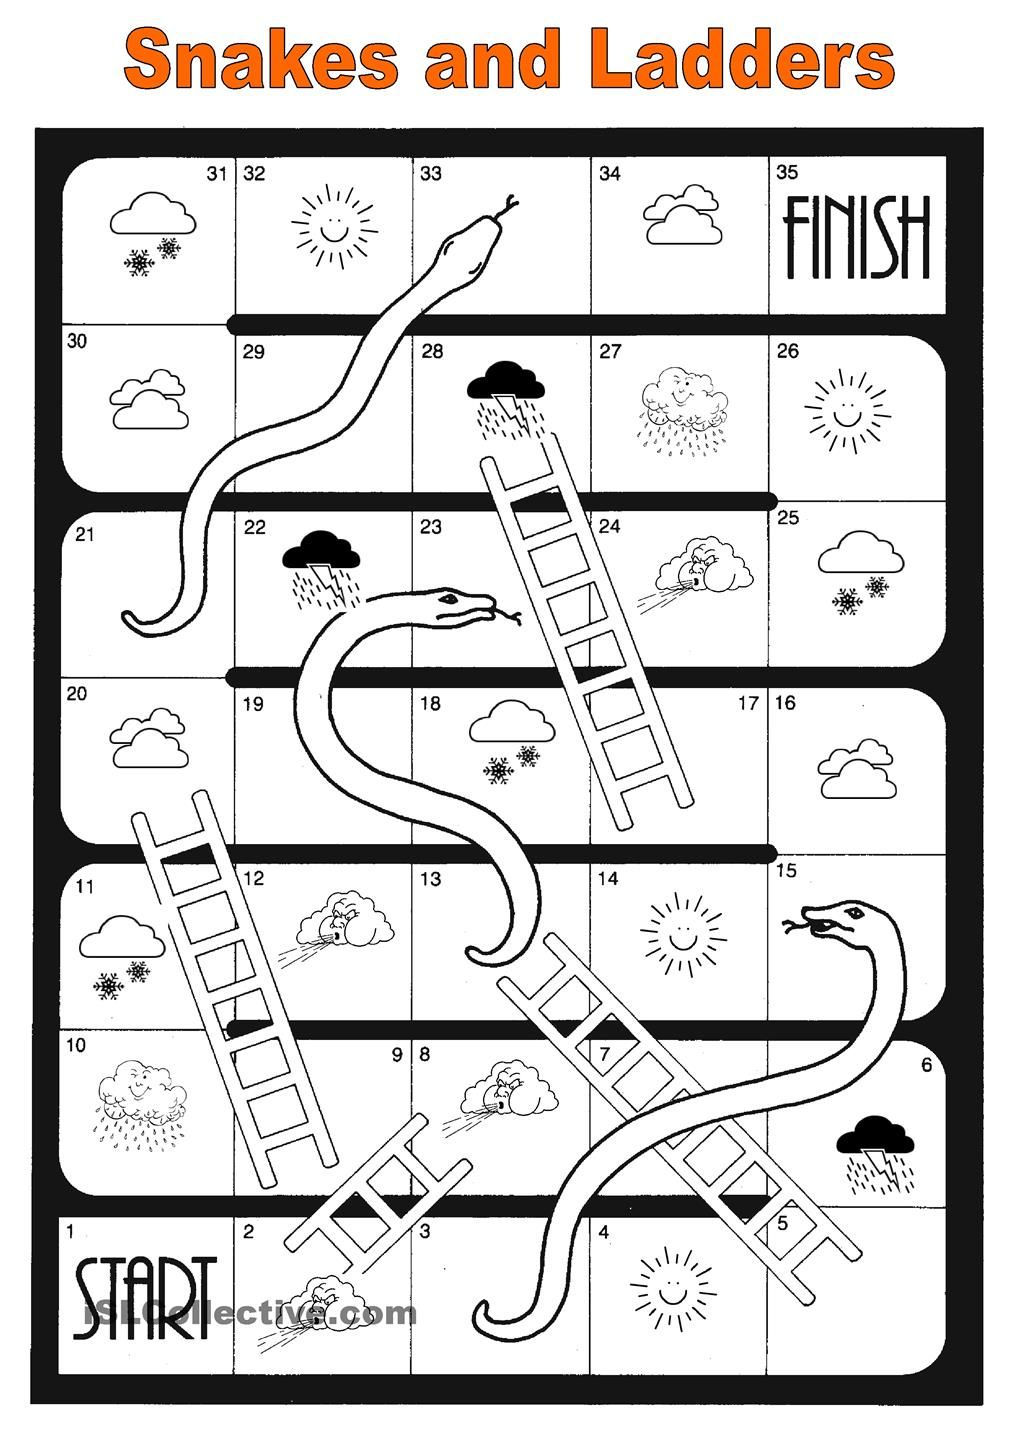 snakes and ladders template pdf - snakes and ladders weather francais pinterest ladder